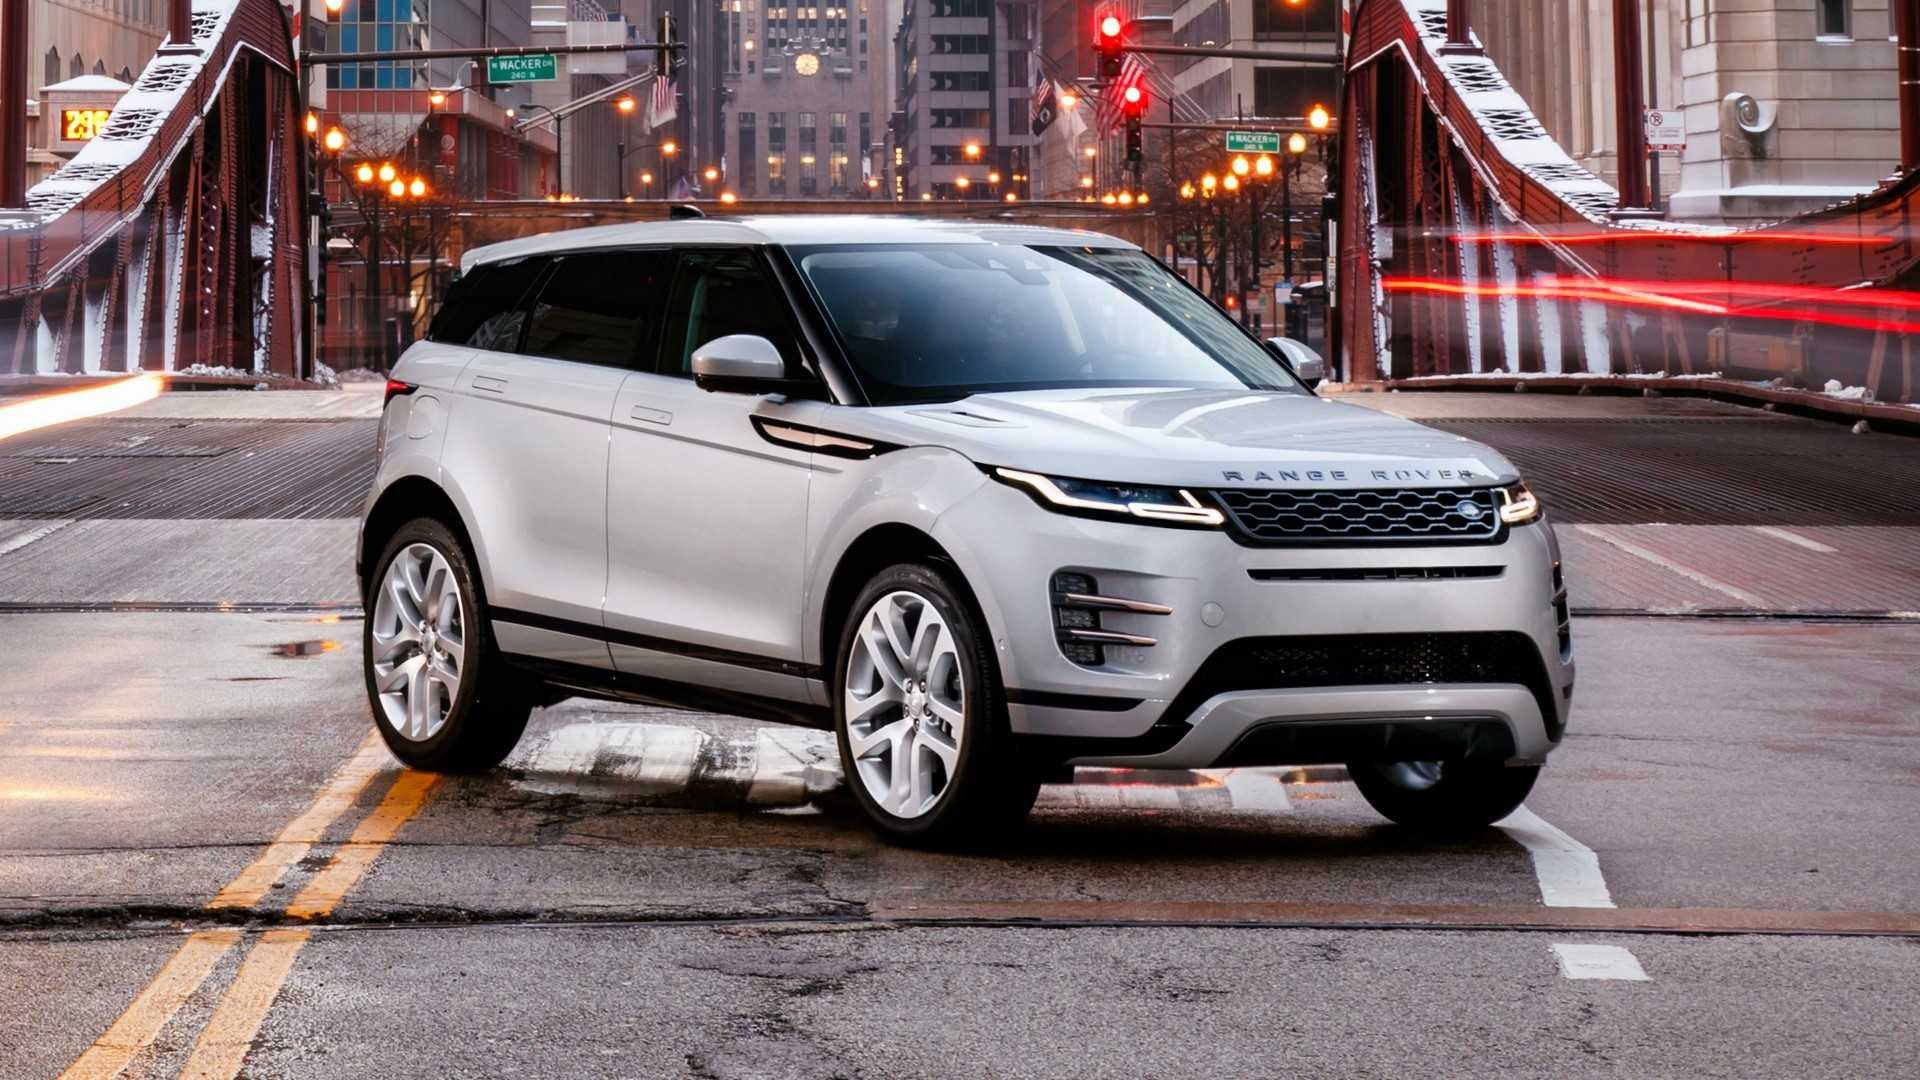 a190d615 Land Rover Range Rover Evoque News and Reviews | Motor1.com